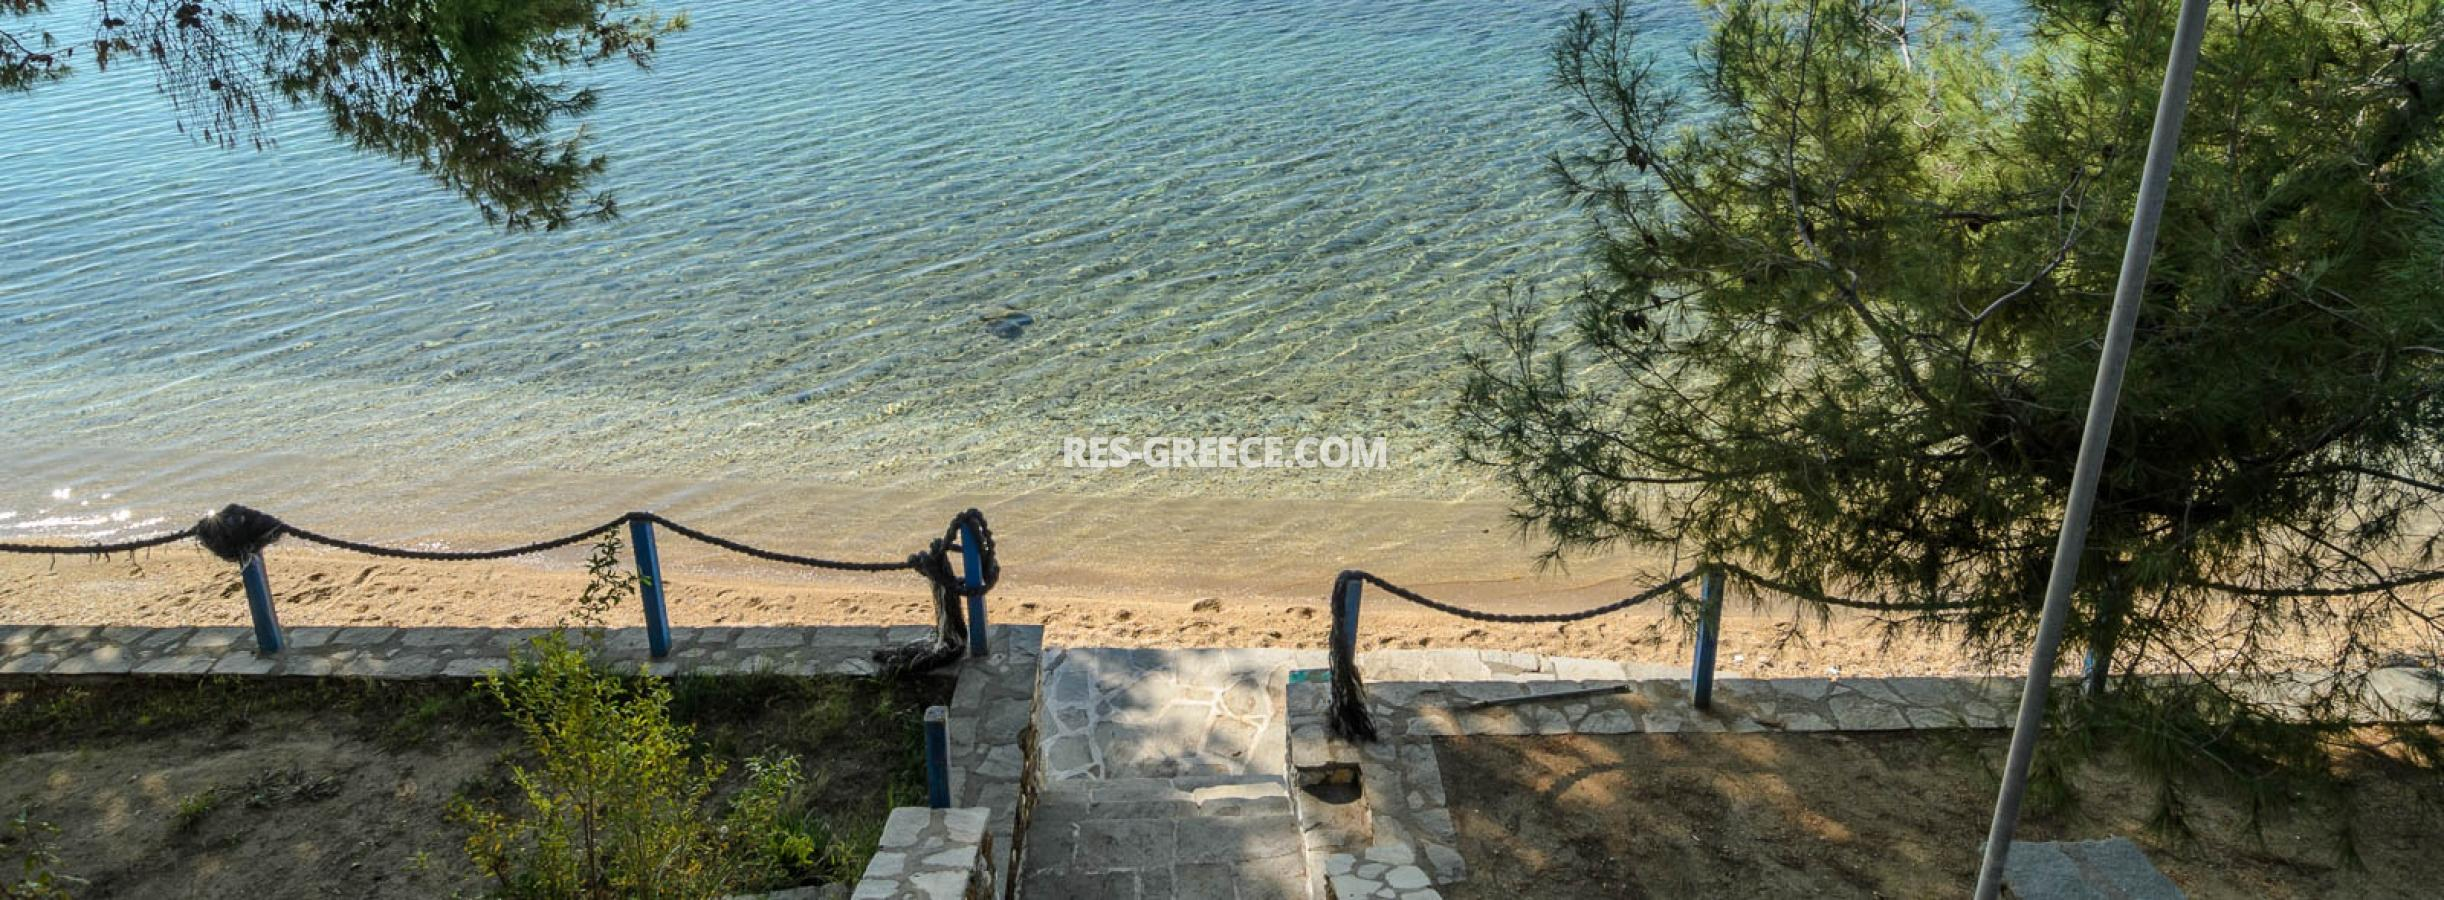 Ilectra, Halkidiki-Sithonia, Greece - cozy cottage with a pool by the sea - Photo 11